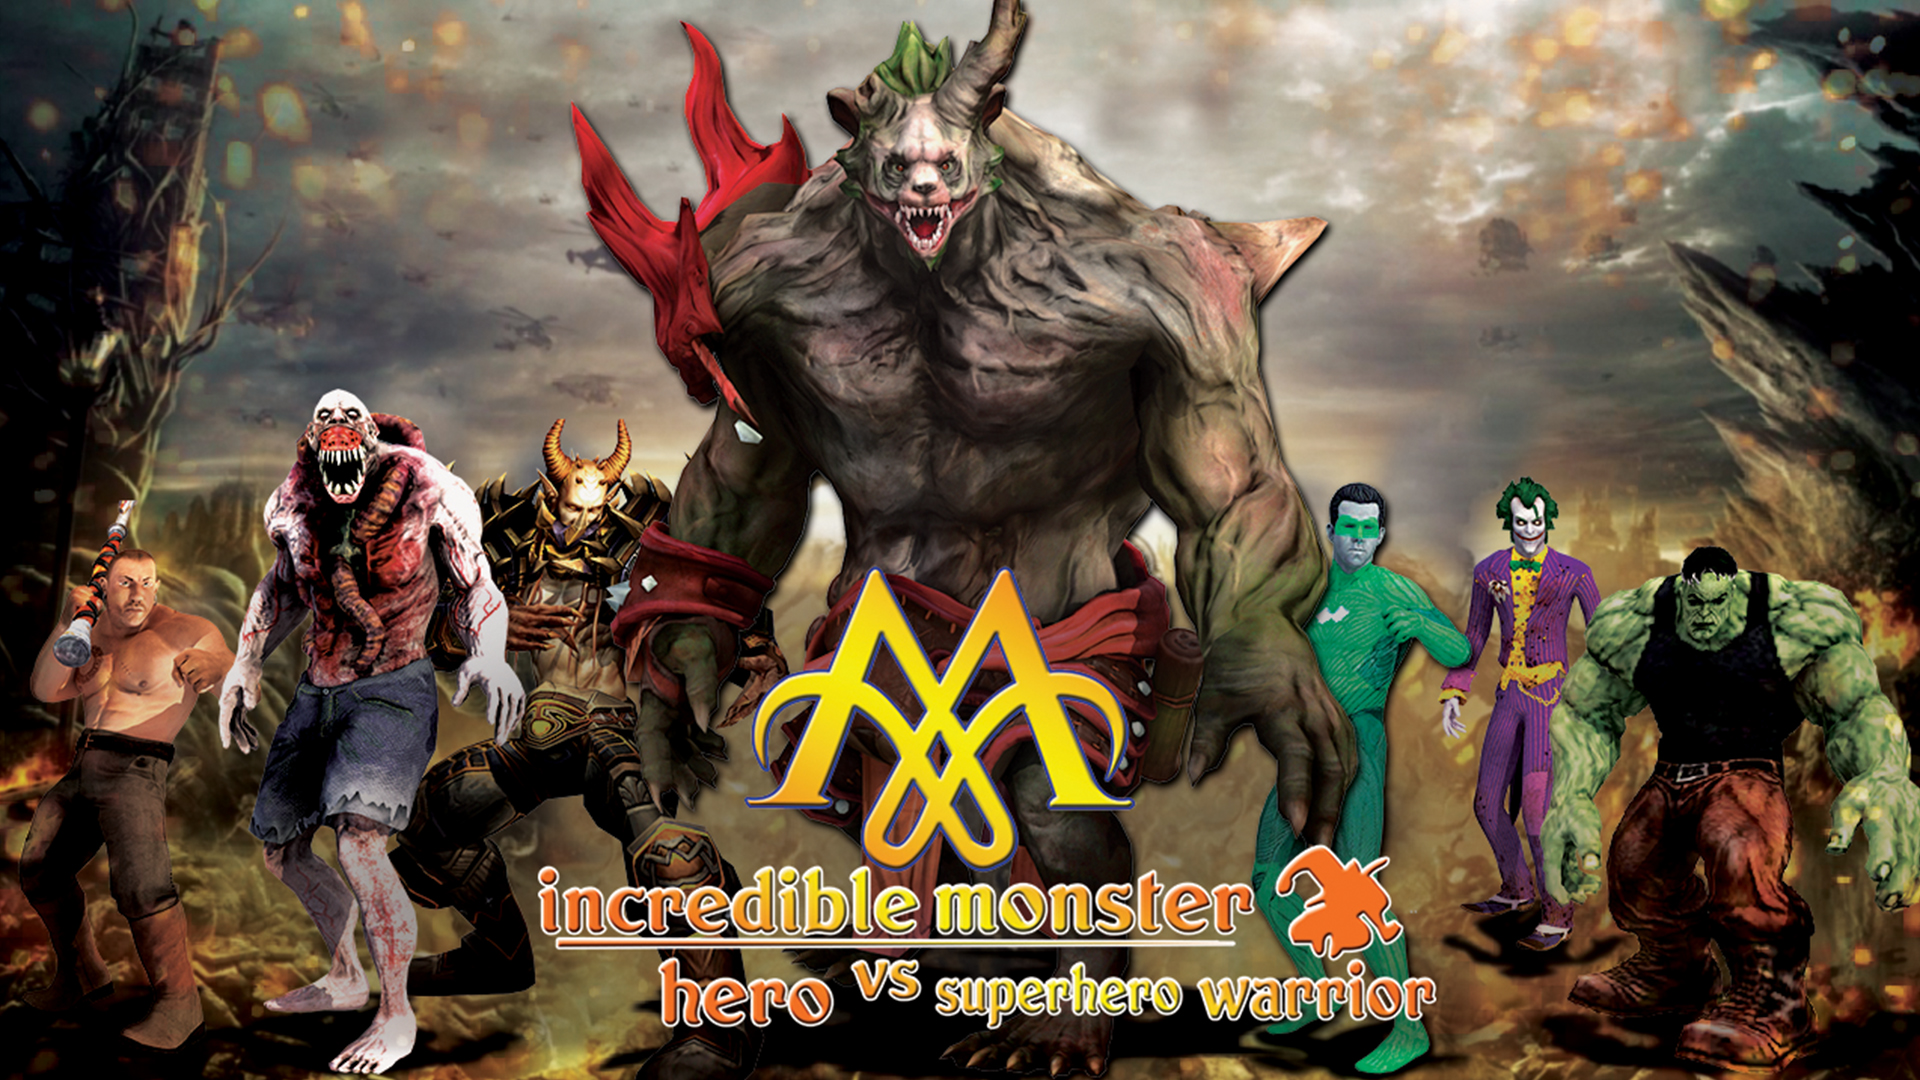 Incredible Monster Fighter vs Superhero Warrior